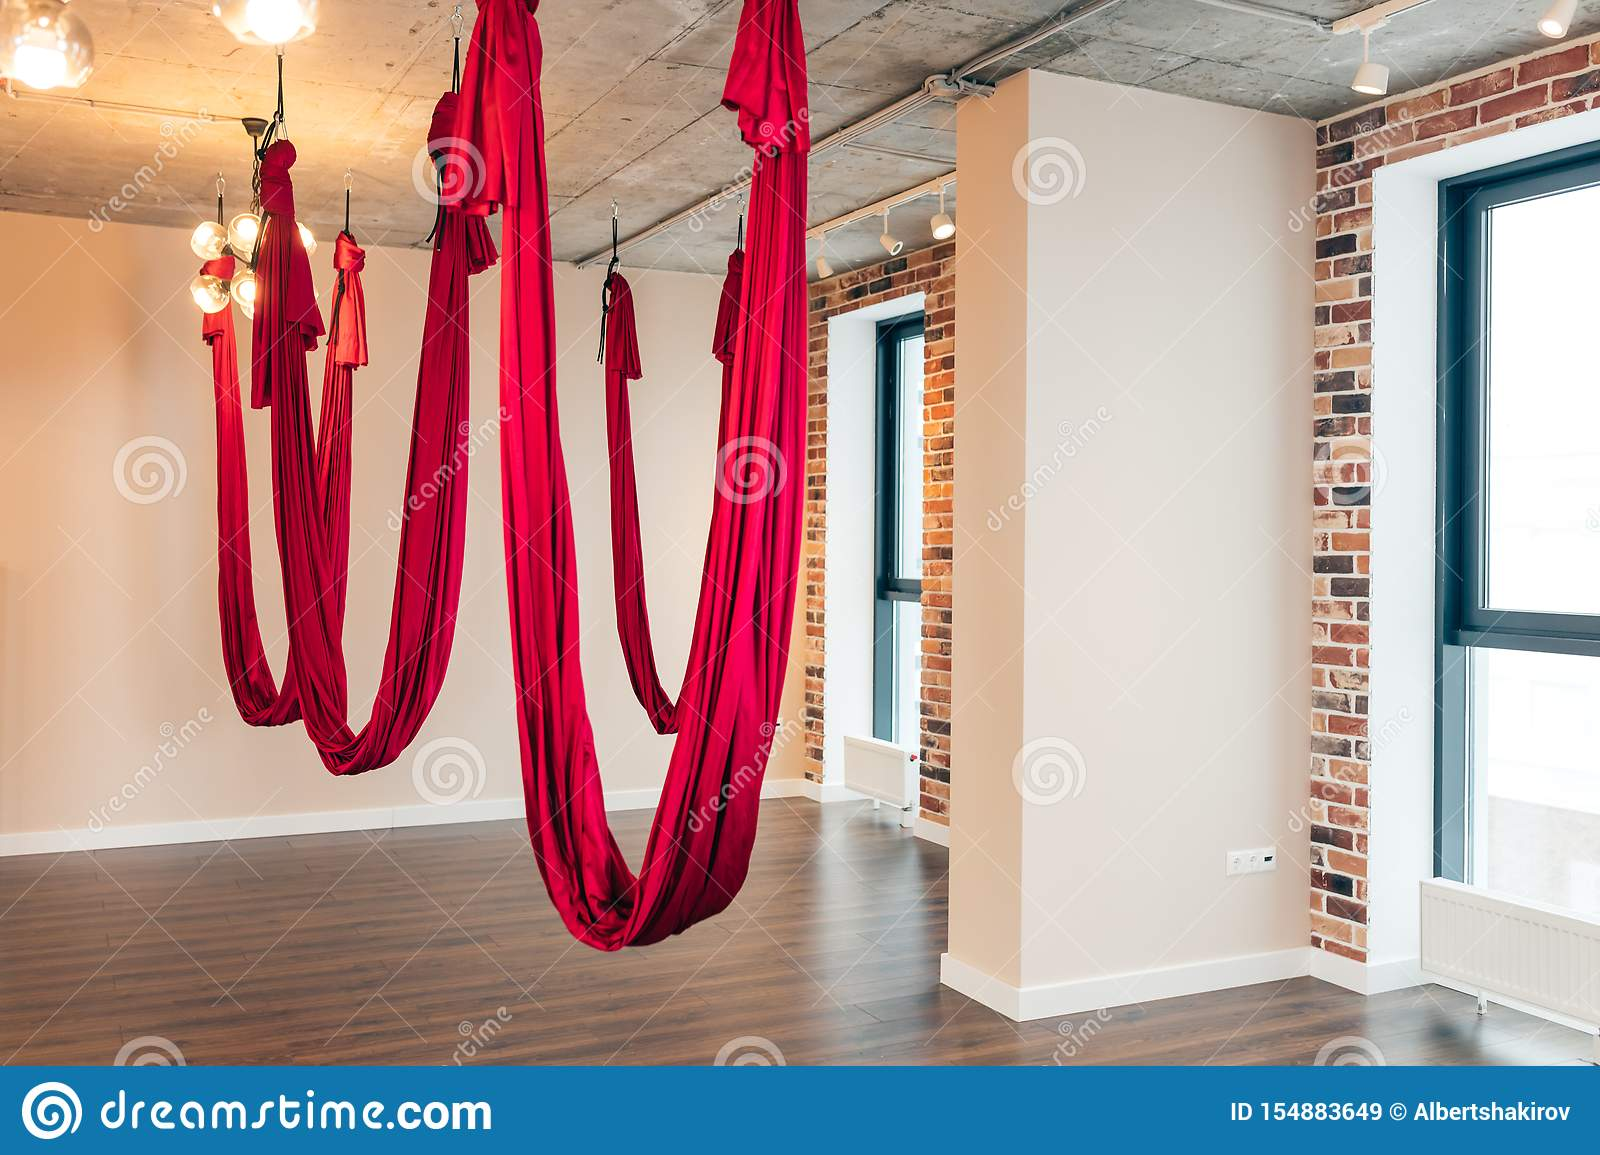 Empty Flying Yoga Loft Design Studio With Red Hammocks And Wooden Texture Floor Stock Image Image Of Design Class 154883649